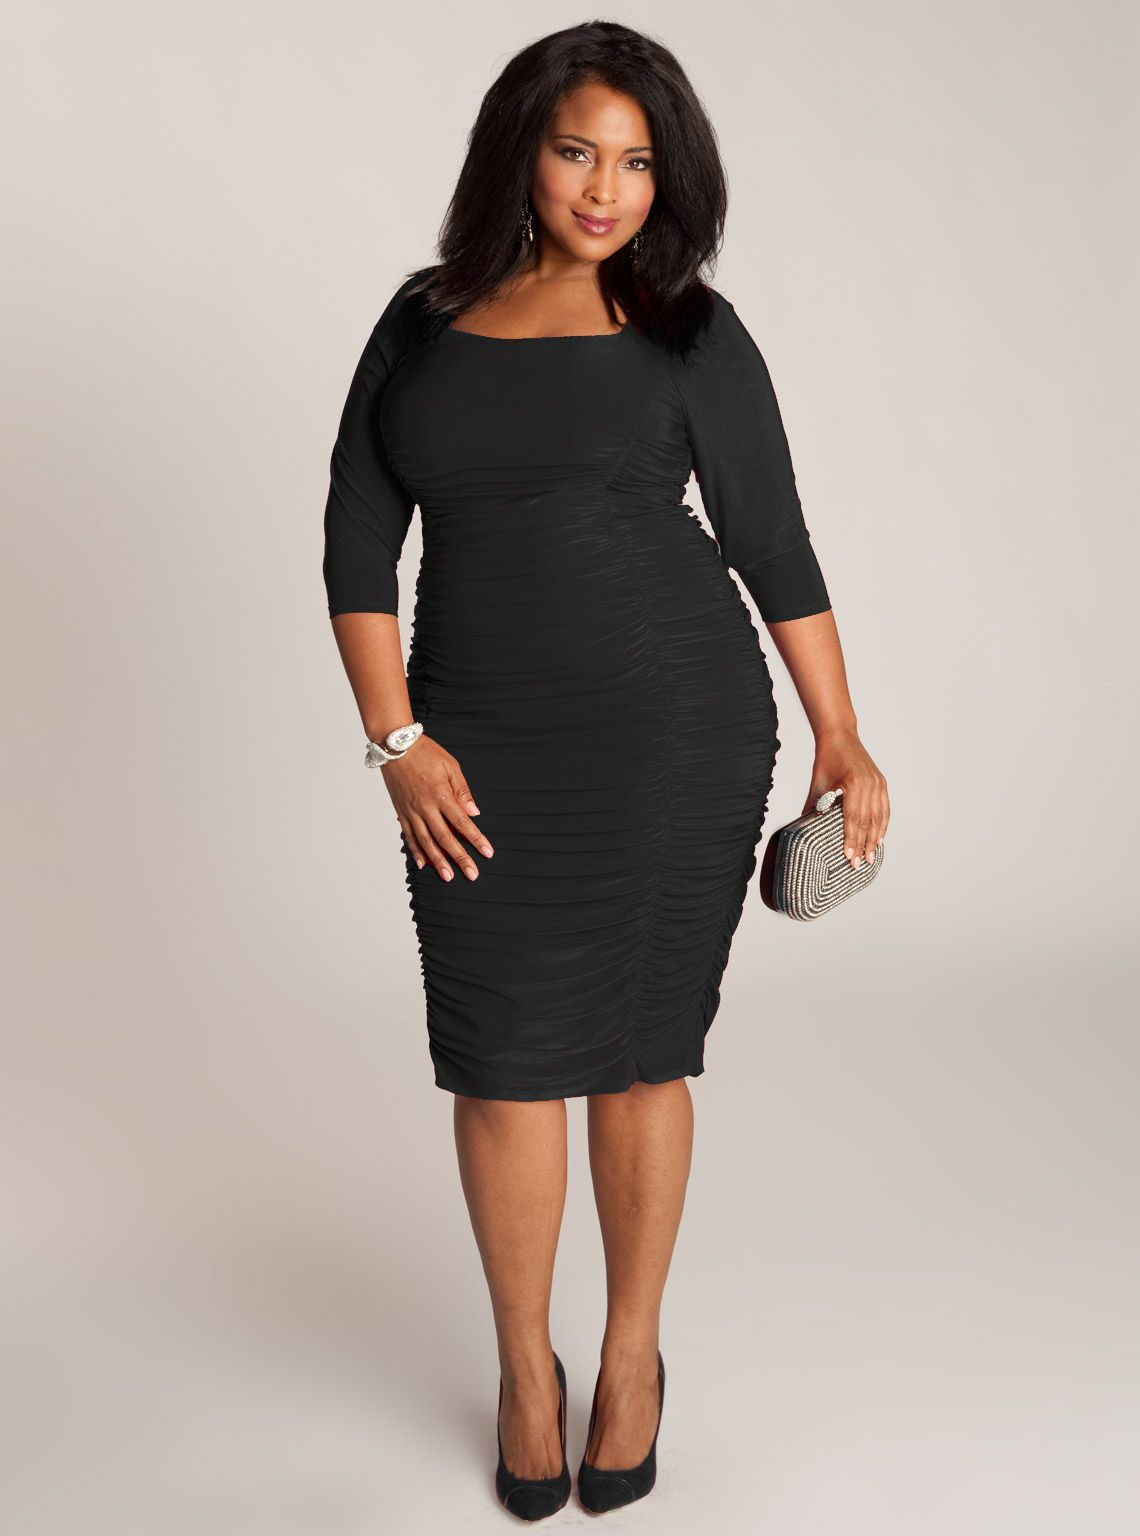 Felina Plus Size Dress in Black | Little Bit Bigger is A Little ...